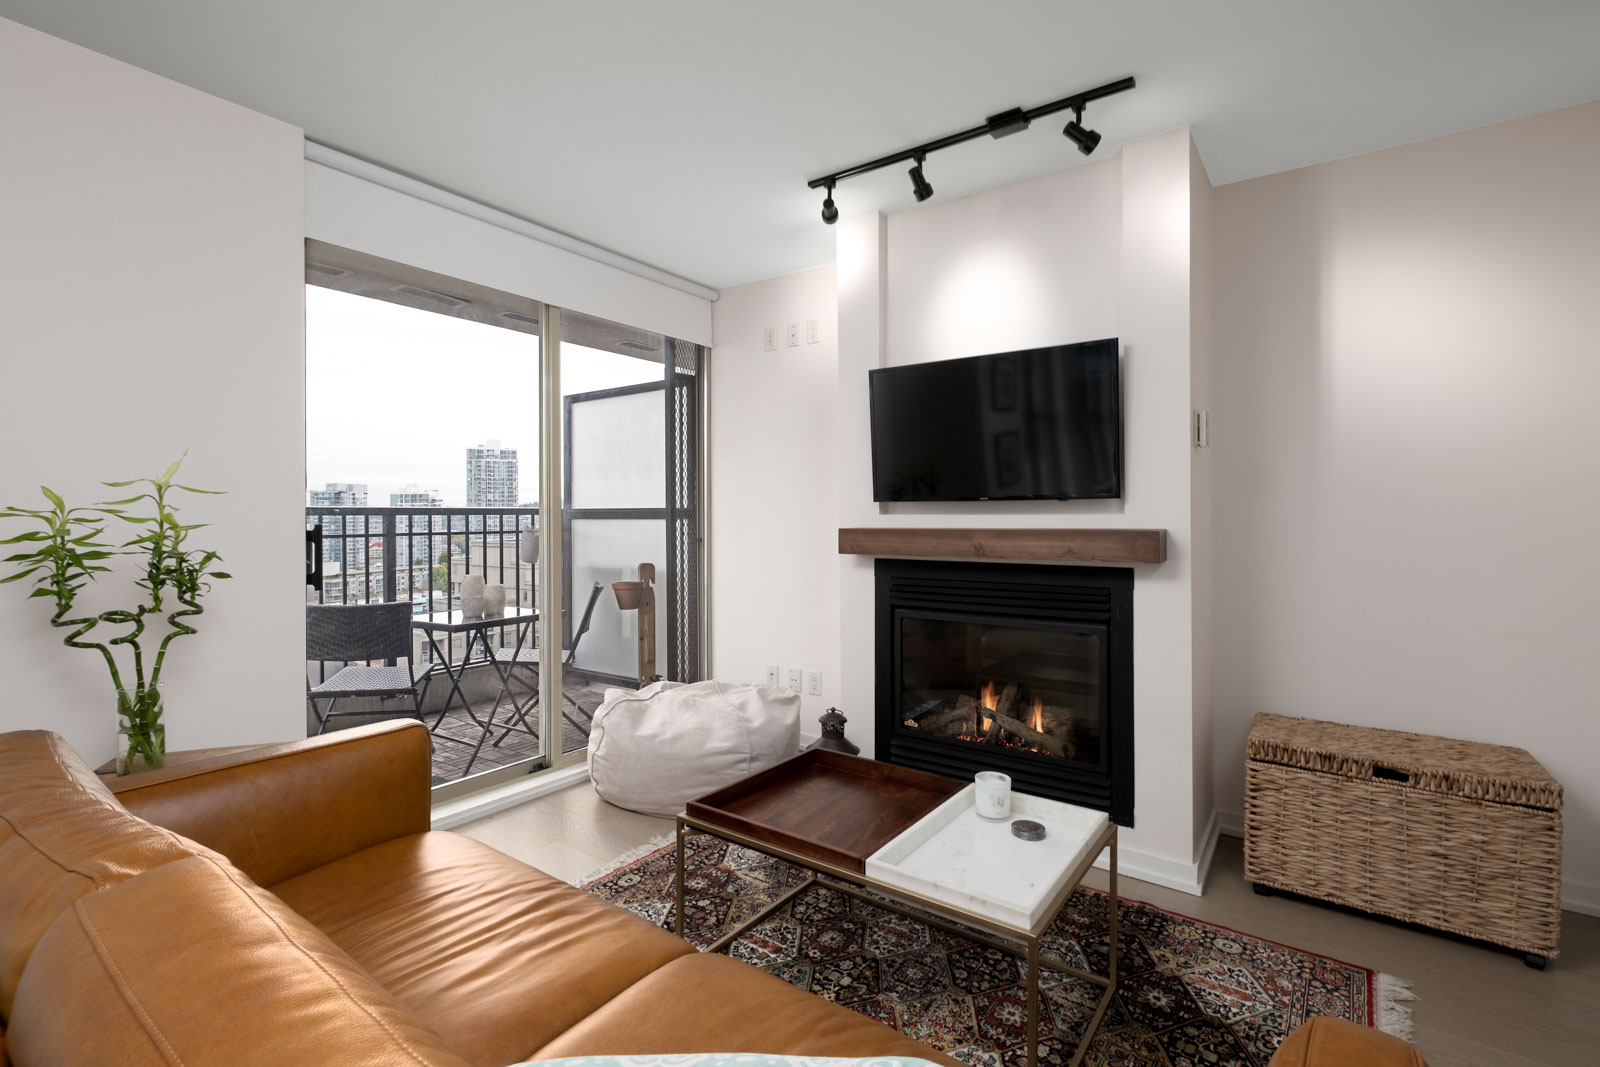 living room with balcony of rental condo fully furnished with tv fireplace and couch at mondrian 2 building in yaletown neighbourhood of downtown vancouver